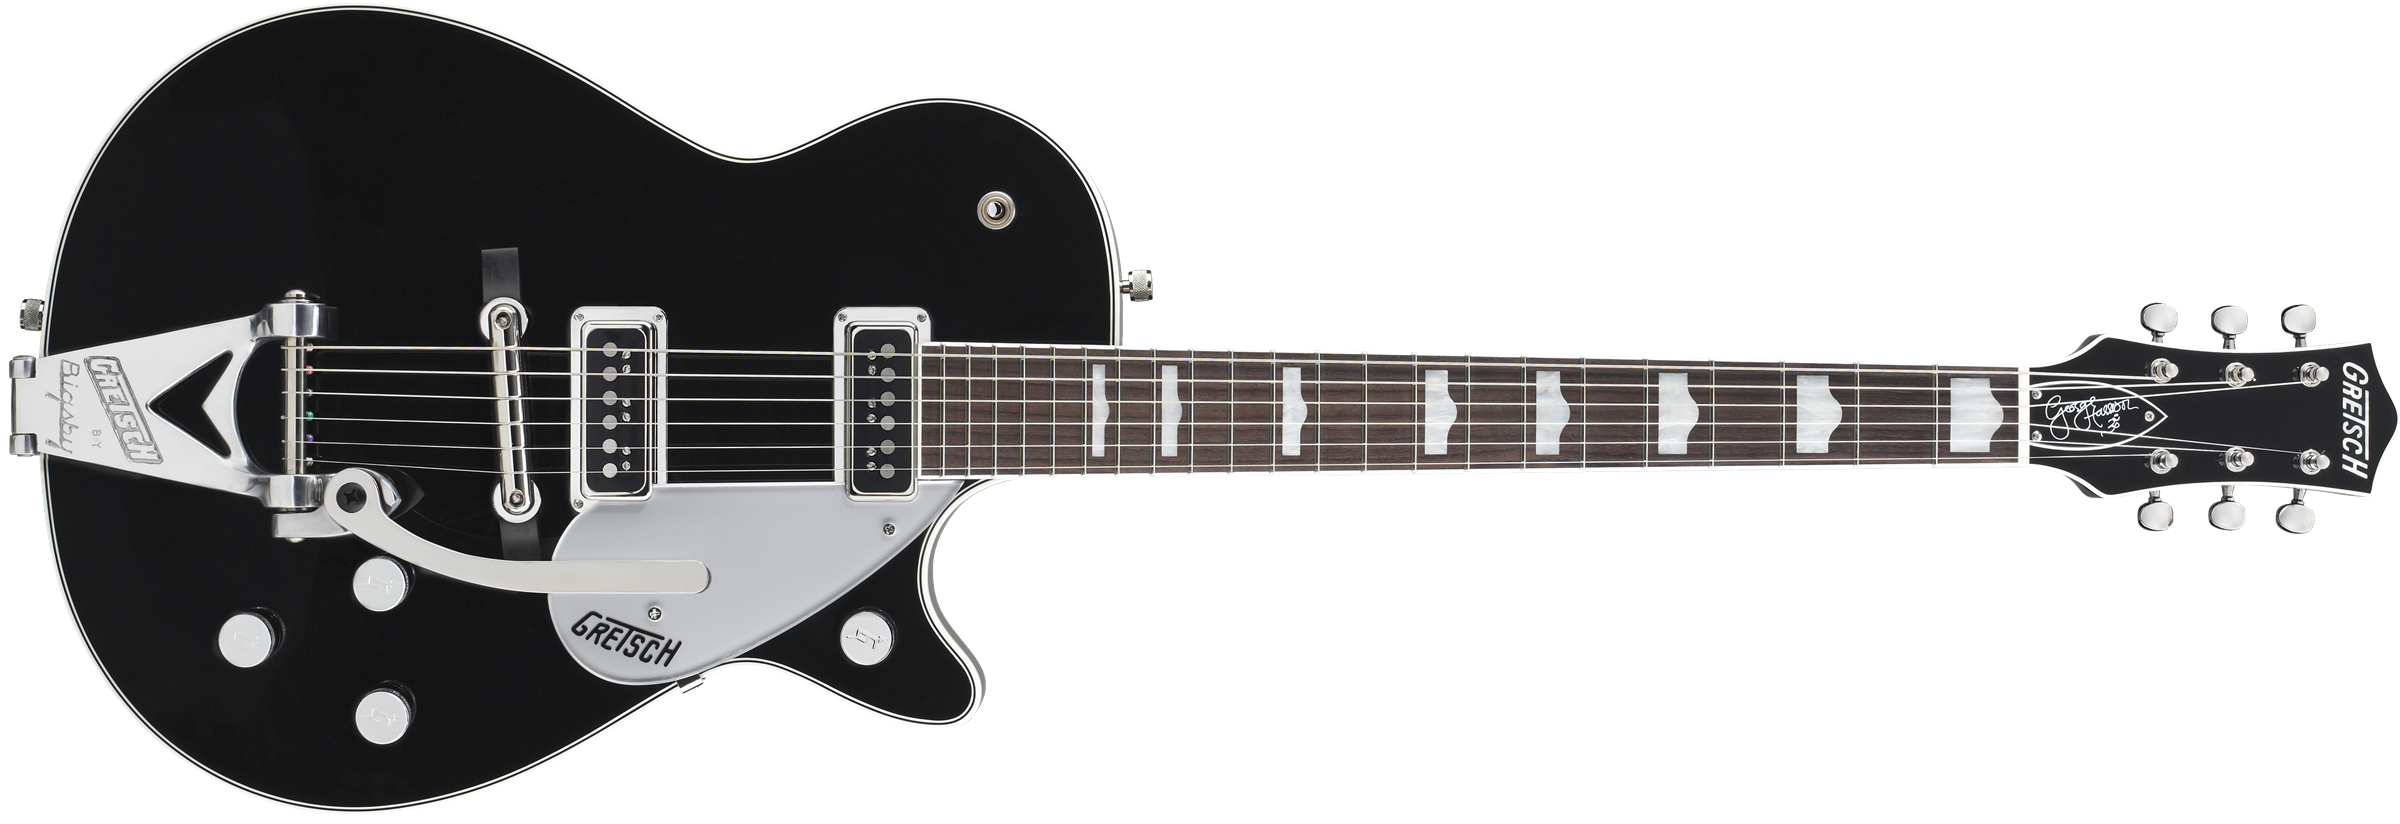 G6128T-GH George Harrison Signature Duo Jet™ with Bigsby®, Rosewood Fingerboard, Black